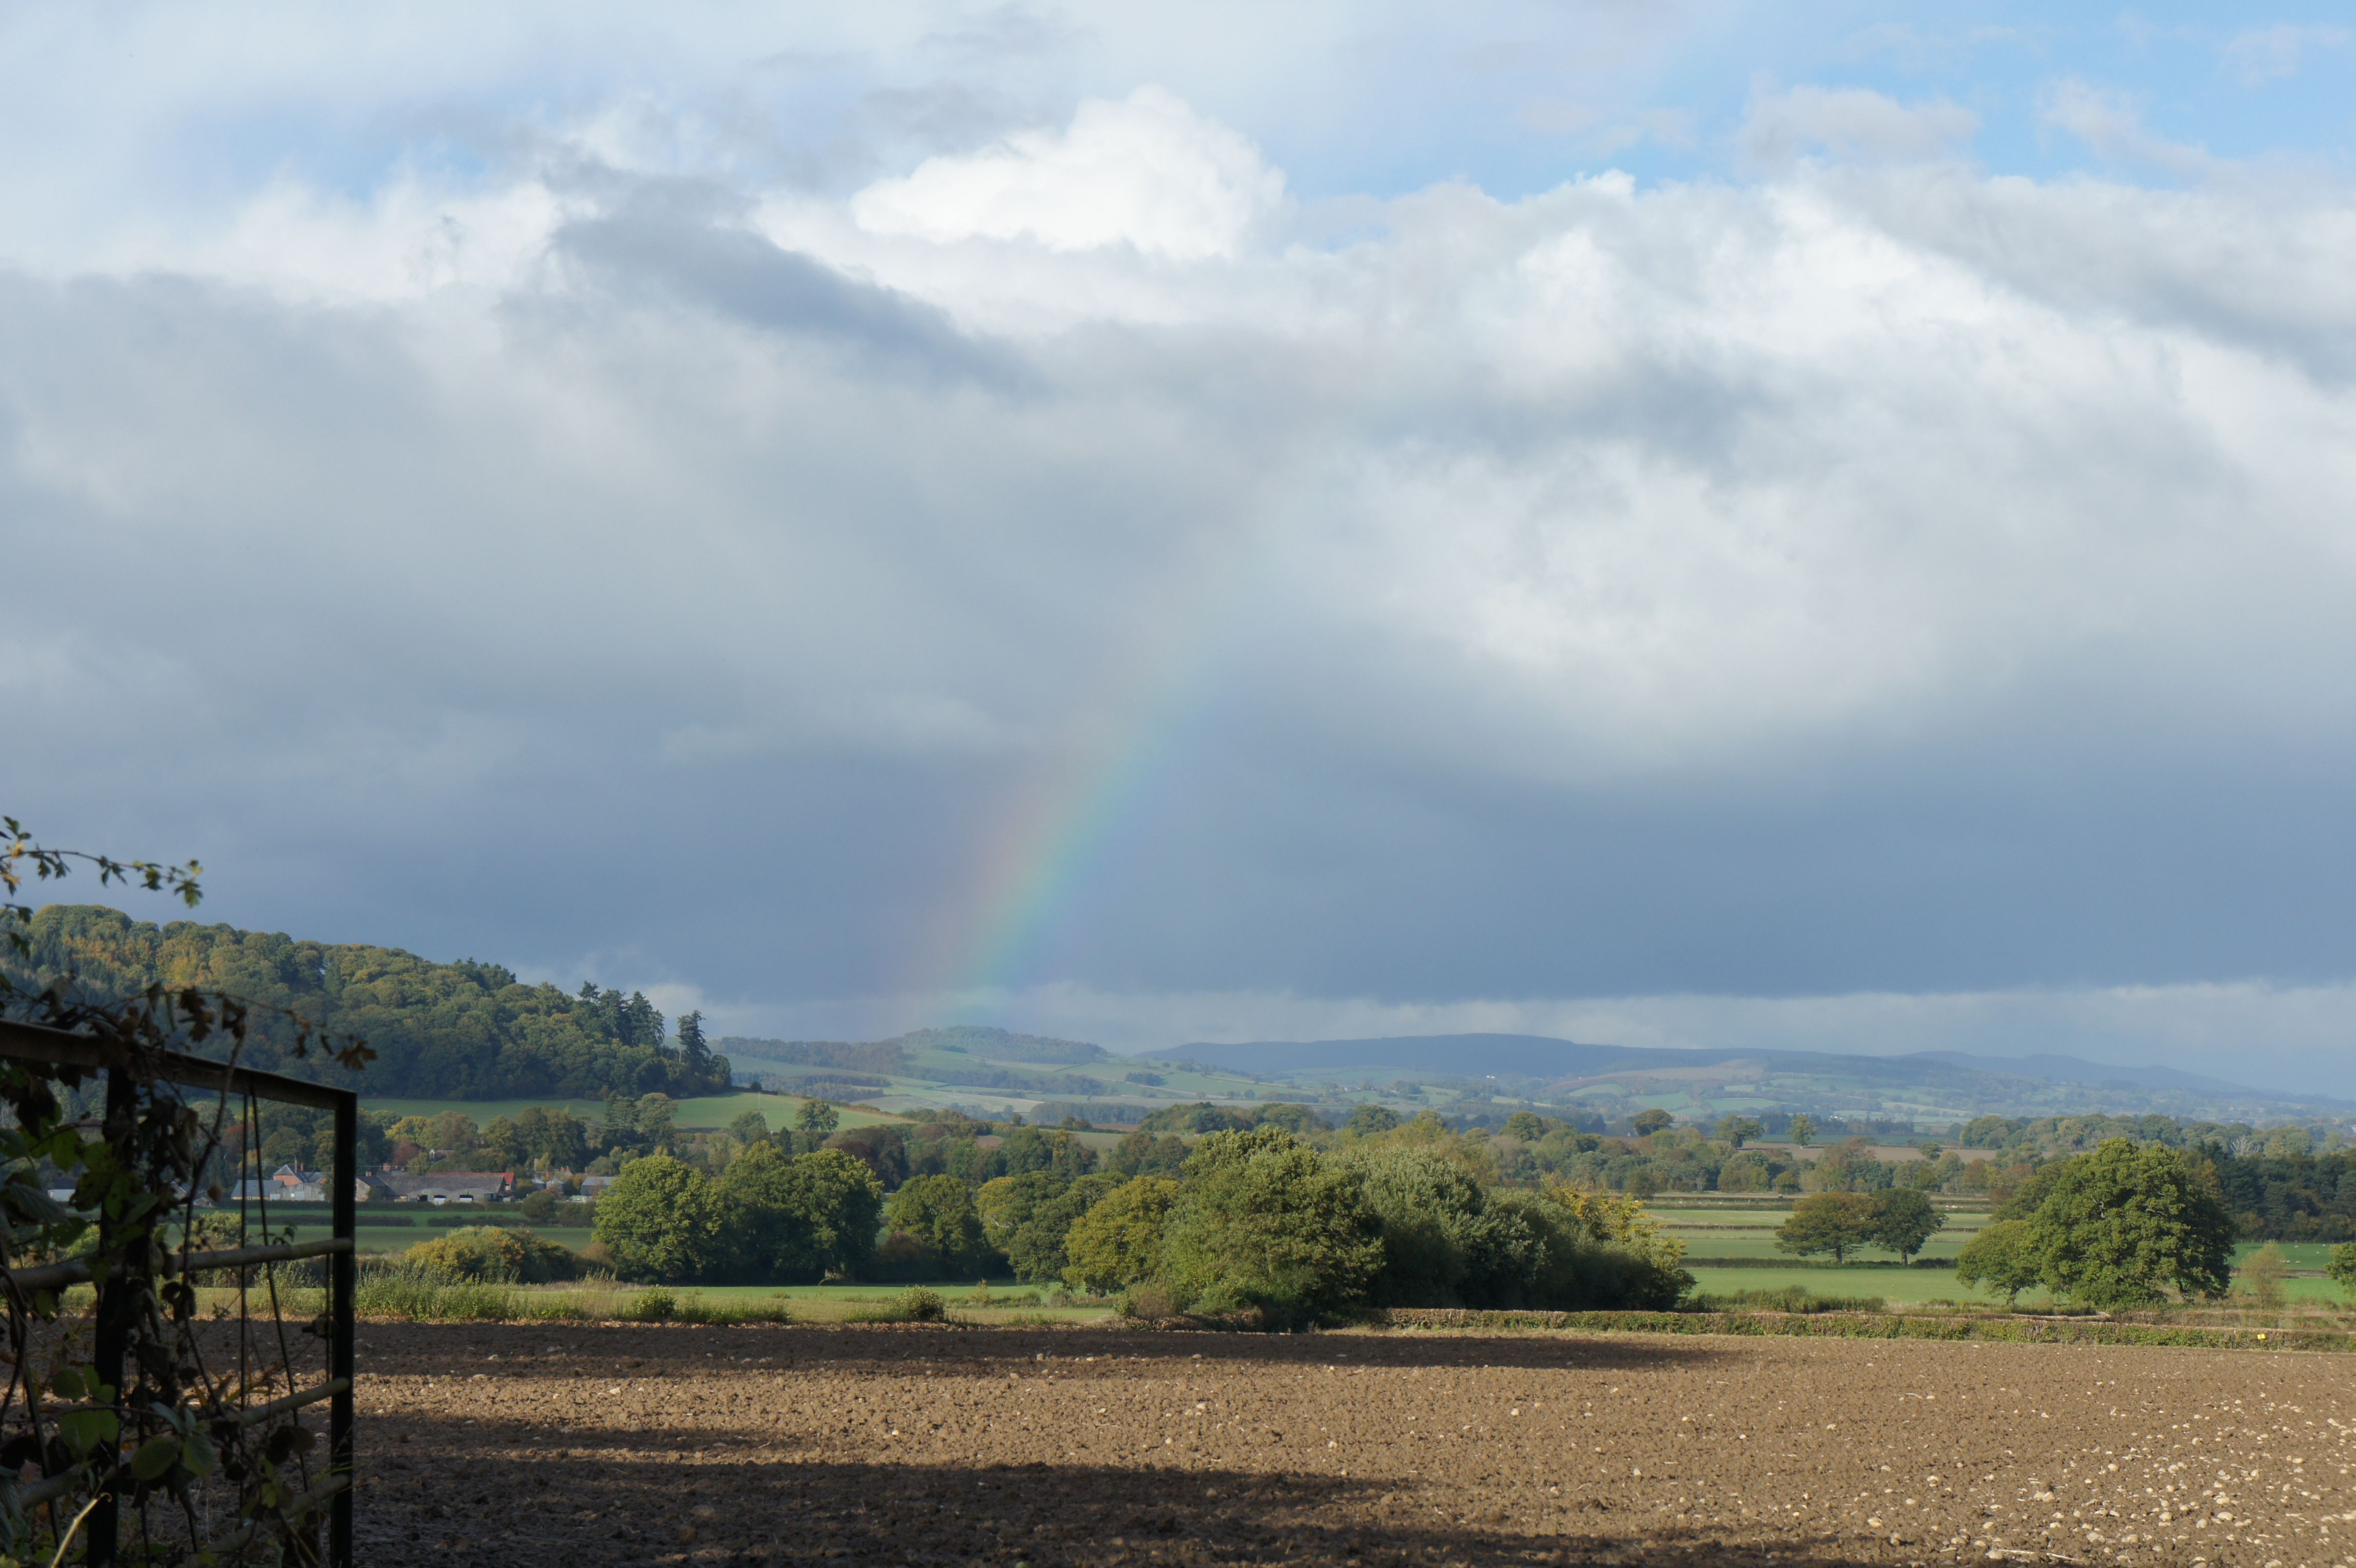 Near Knighton, Powys, Wales - learning to use my new camera! (asm)